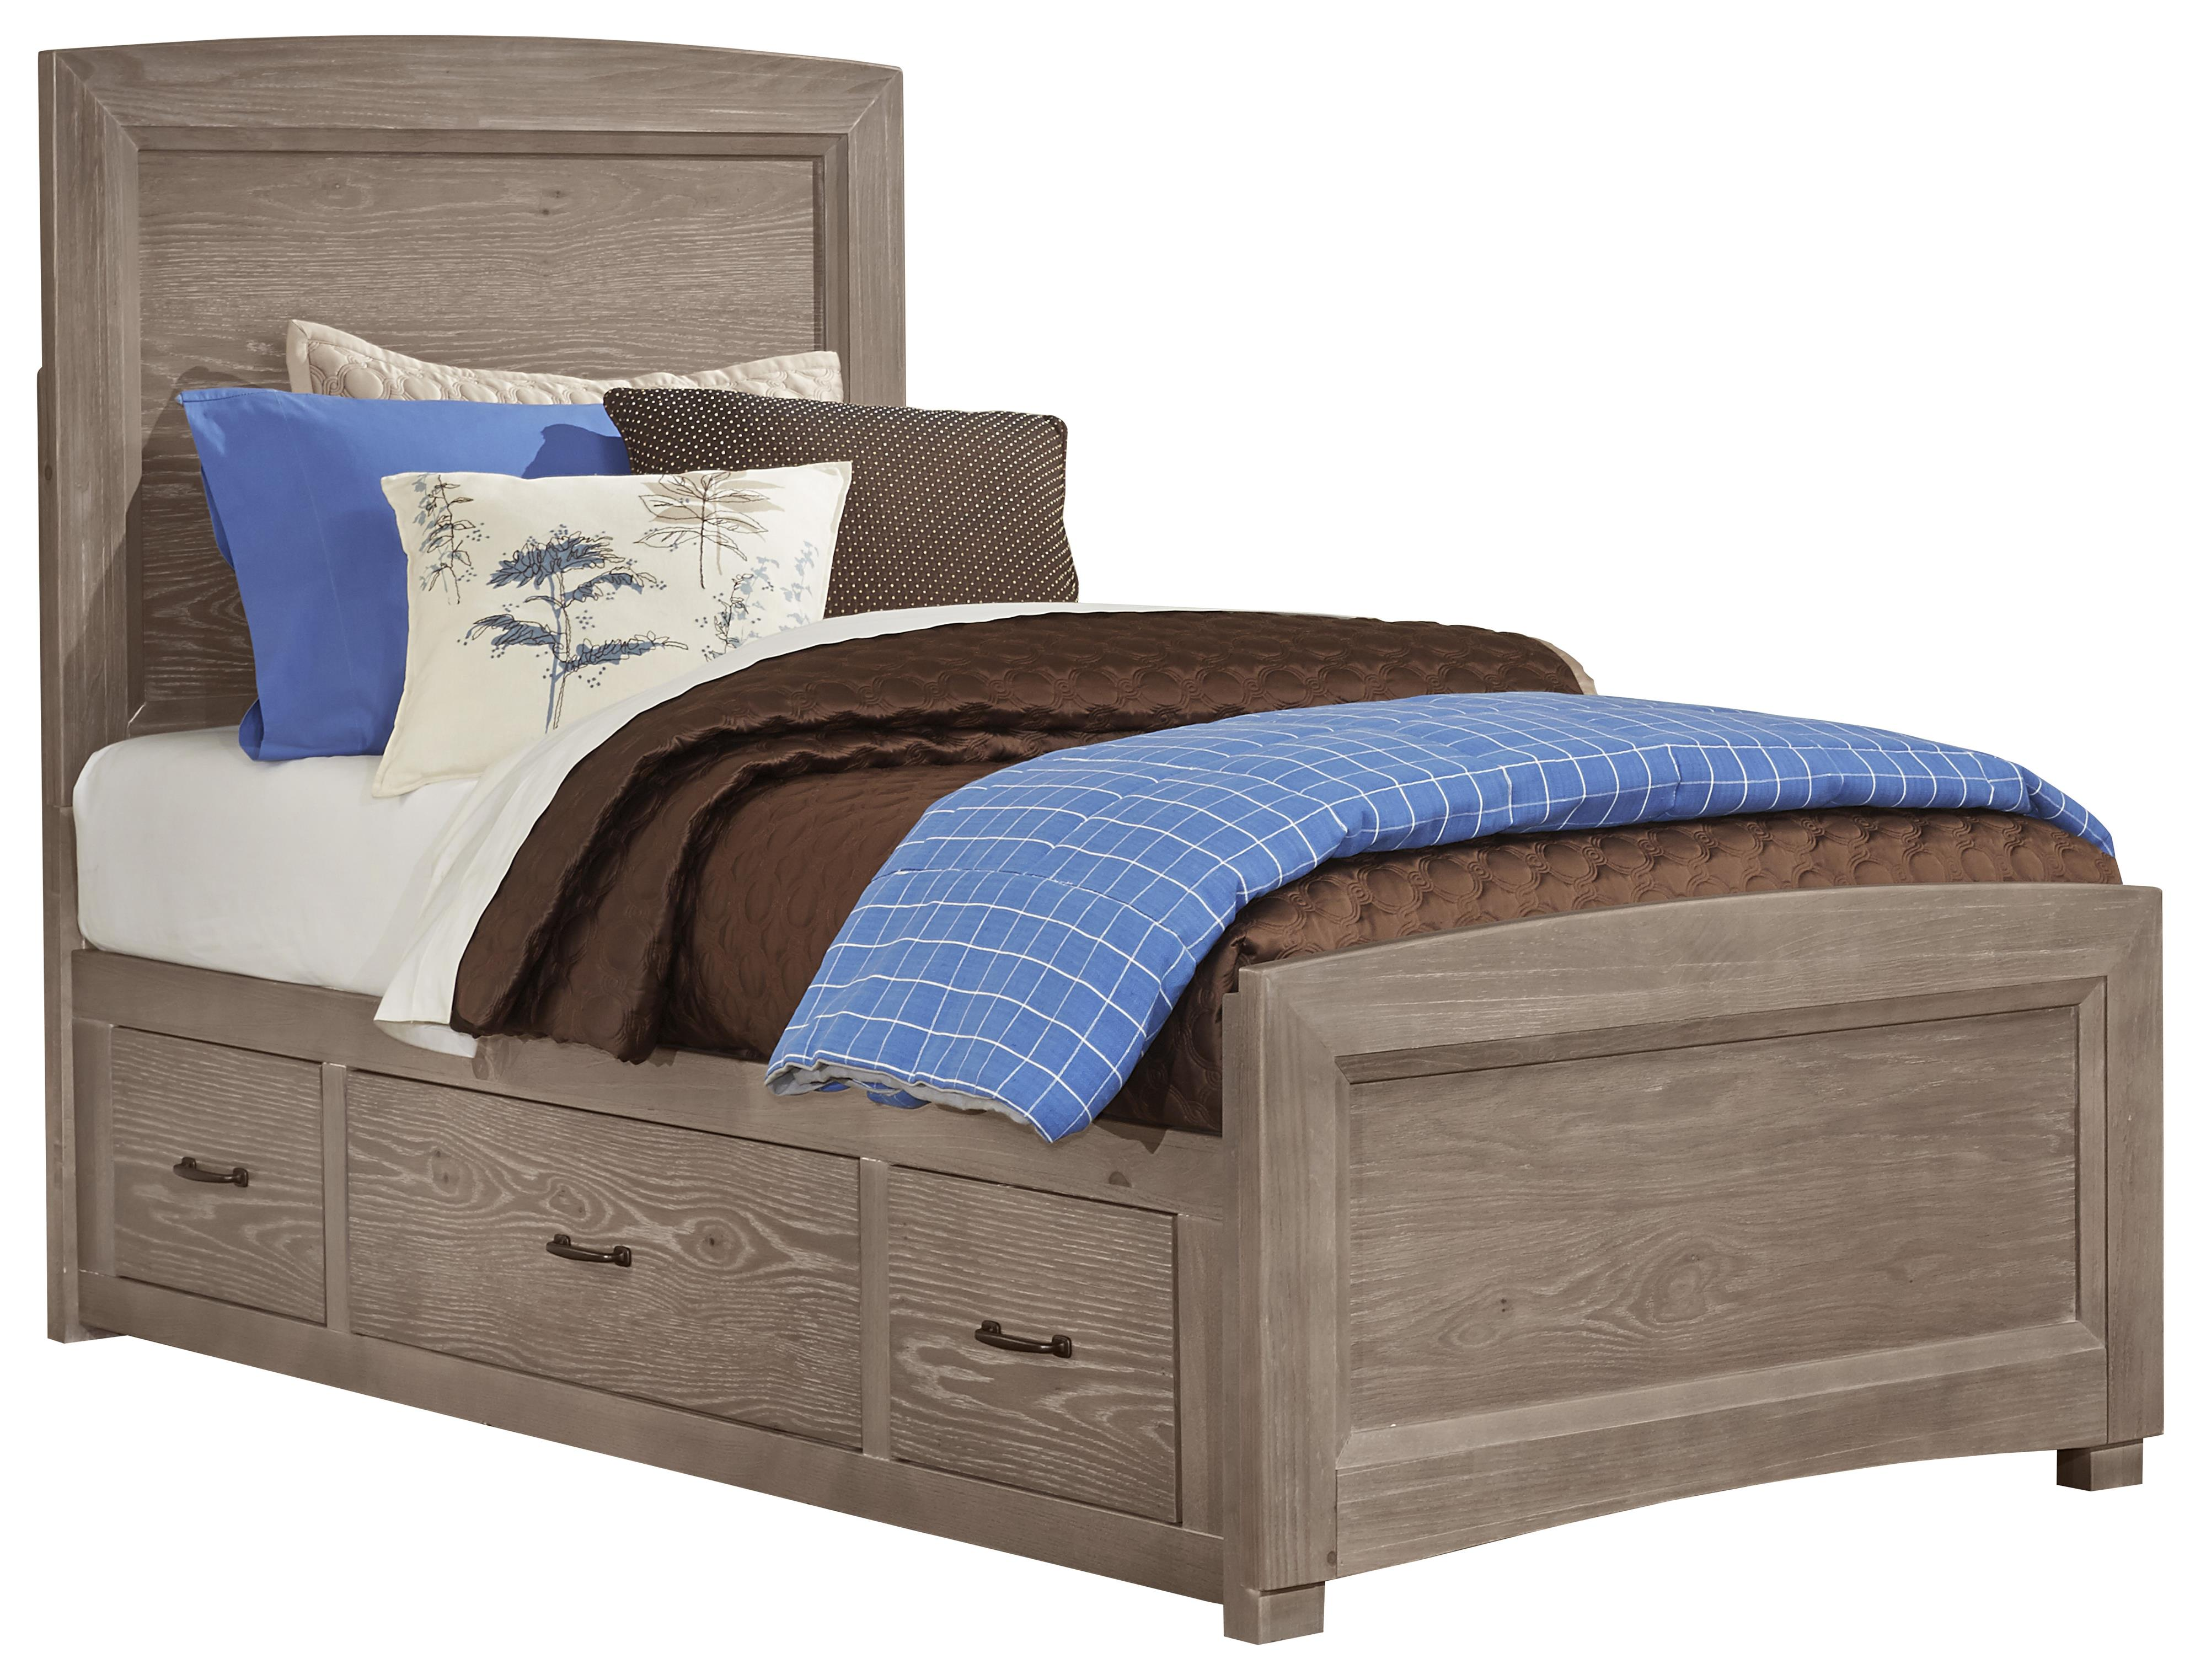 Vaughan Bassett Transitions Twin Panel Bed with Underbed Storage - Item Number: BB61-338+833+076B+076C+333T